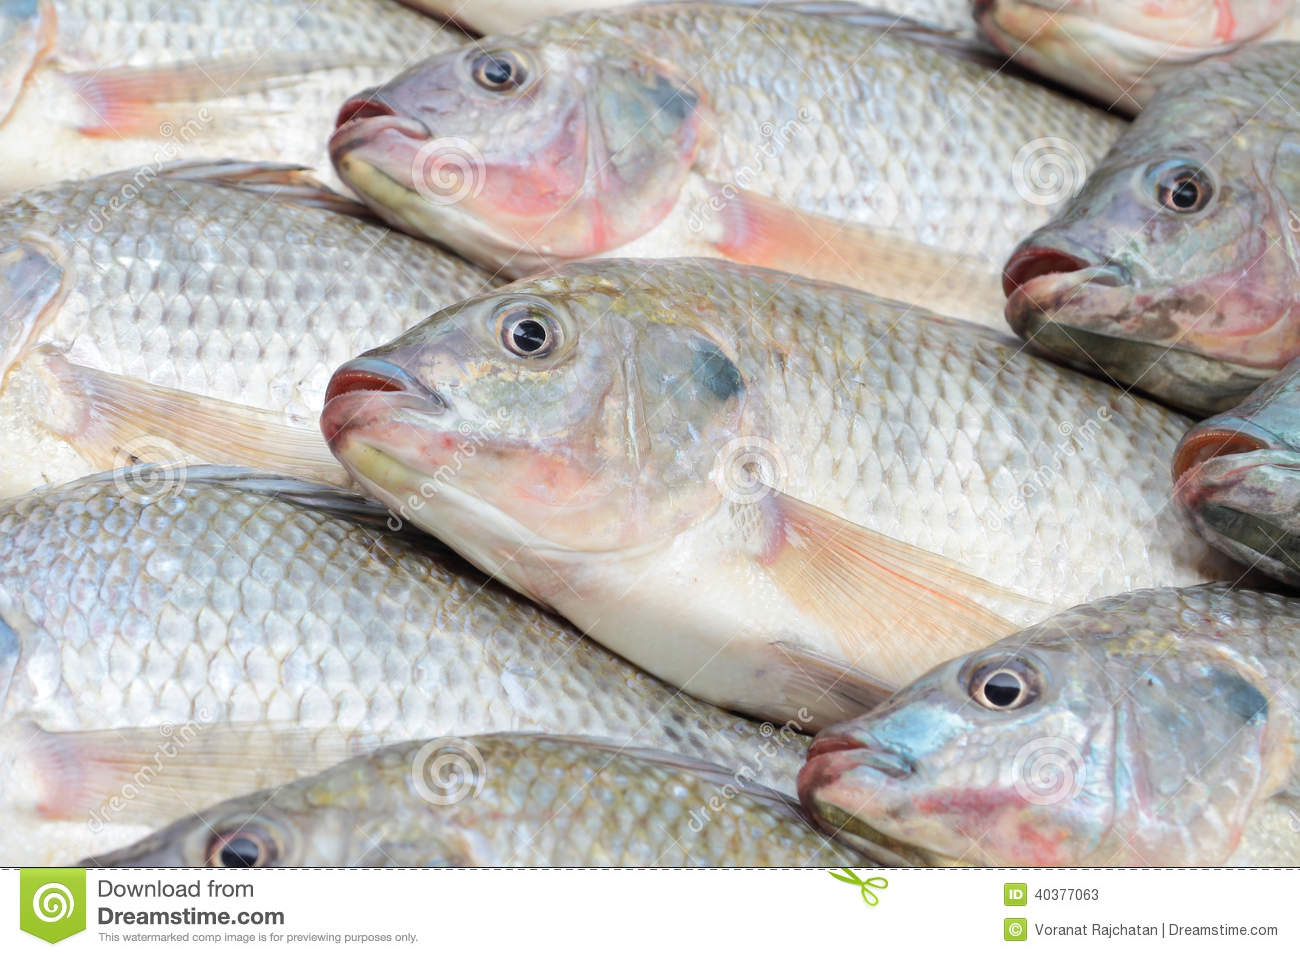 tilapia from the nile to the As it stands, prospective legislation seeking to control the use of nile tilapia will be counter-productive and hamper the growth of aquaculture in south africa.